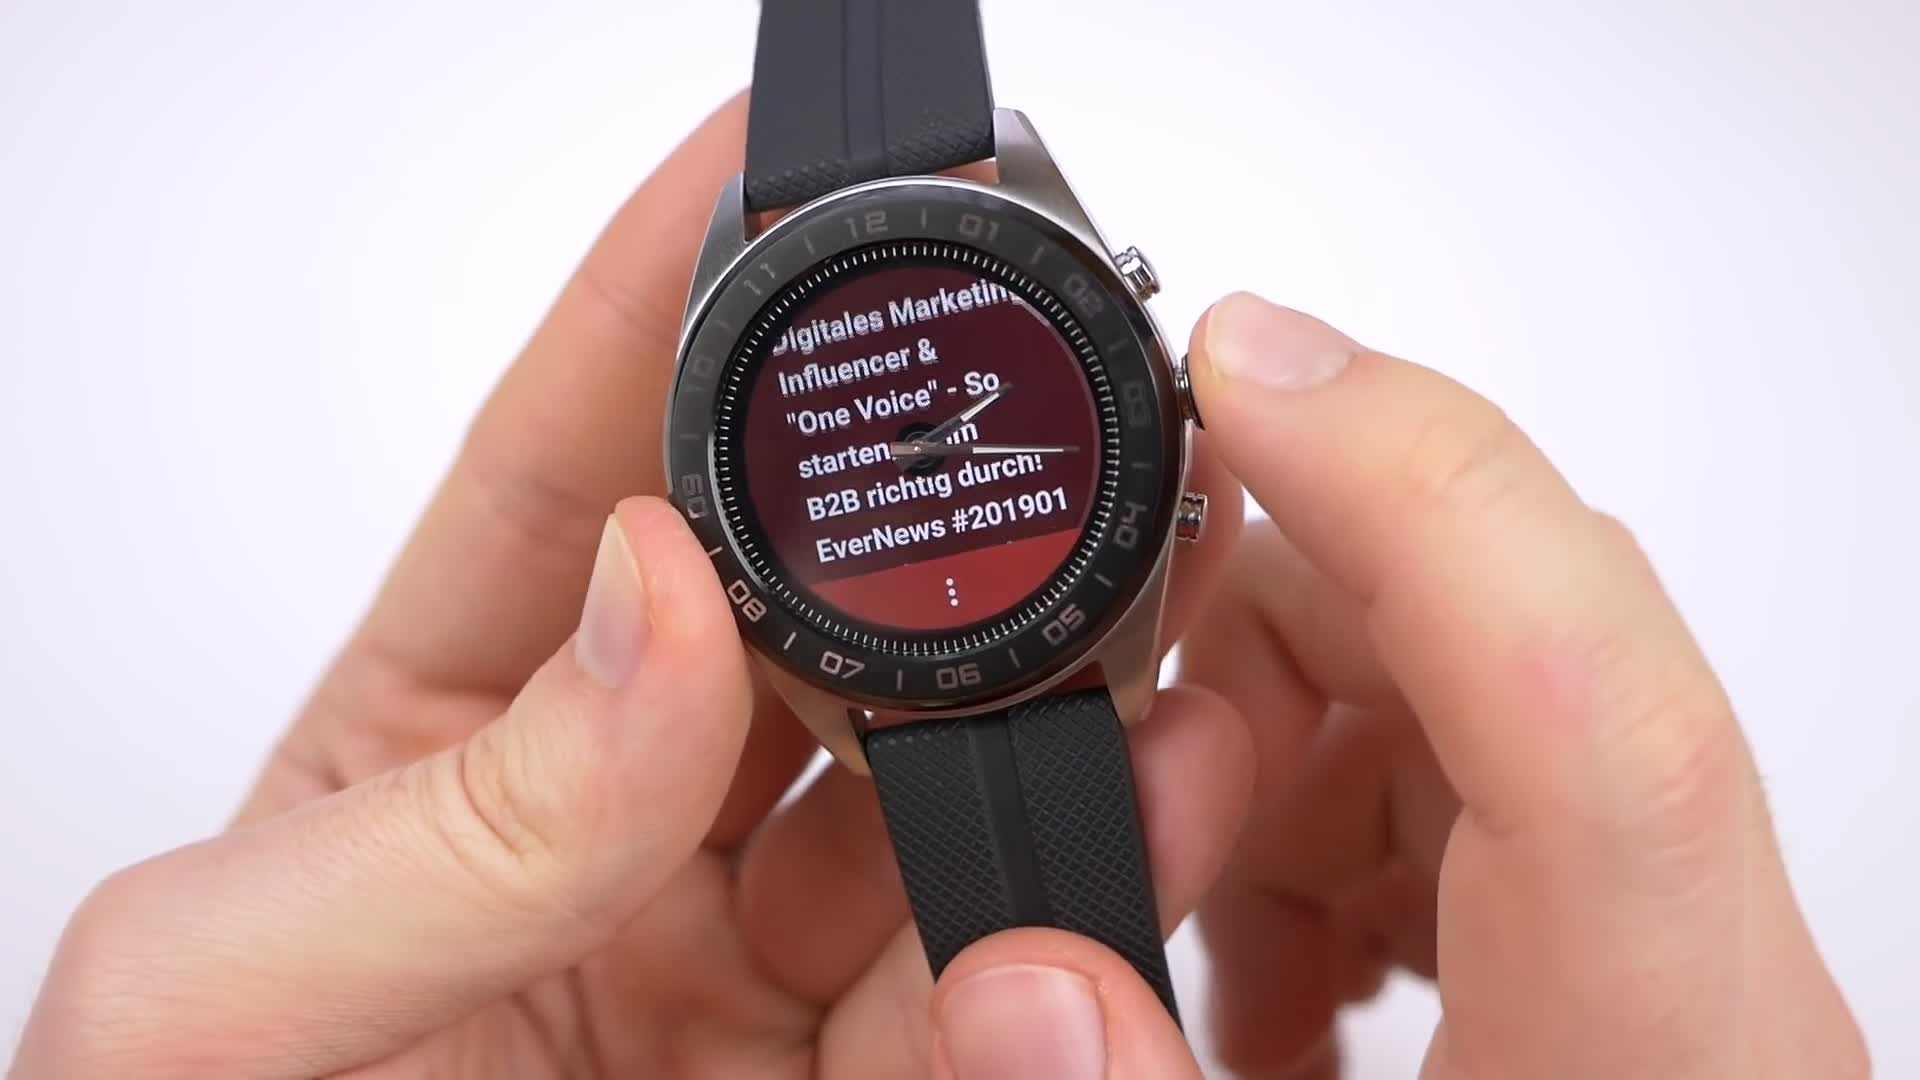 Test, smartwatch, Wearables, Android Wear, Daniil Matzkuhn, tblt, LG Watch, LG Watch W7, Watch W7